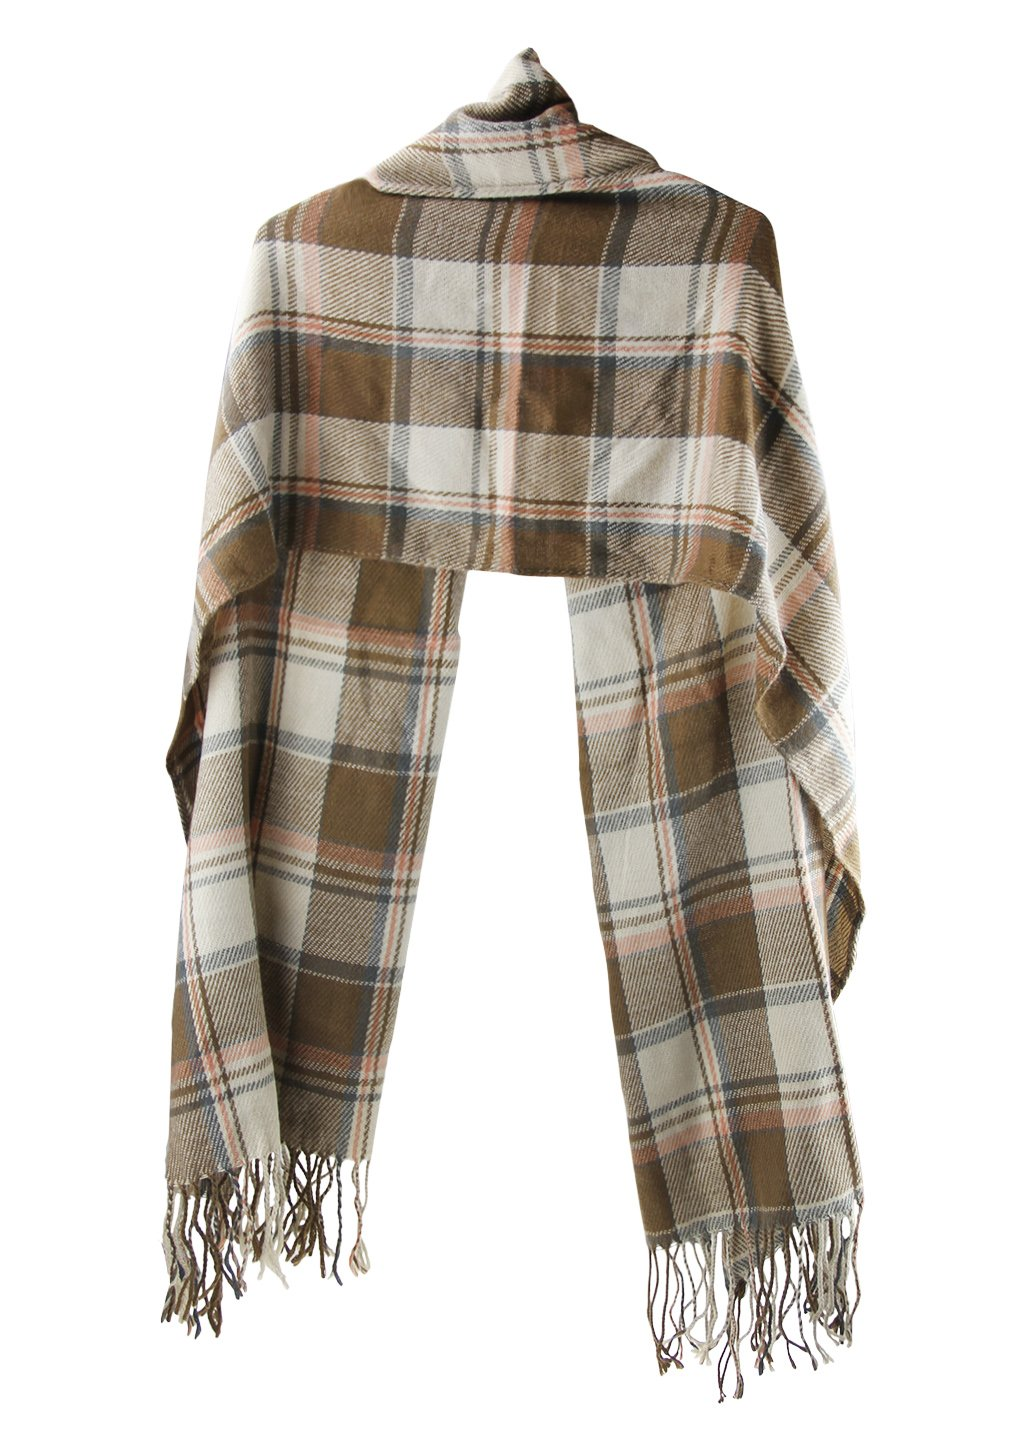 Women Plaid Long Scarves Wraps Vintage Oversized Shawl Tassel Pashmina Stole